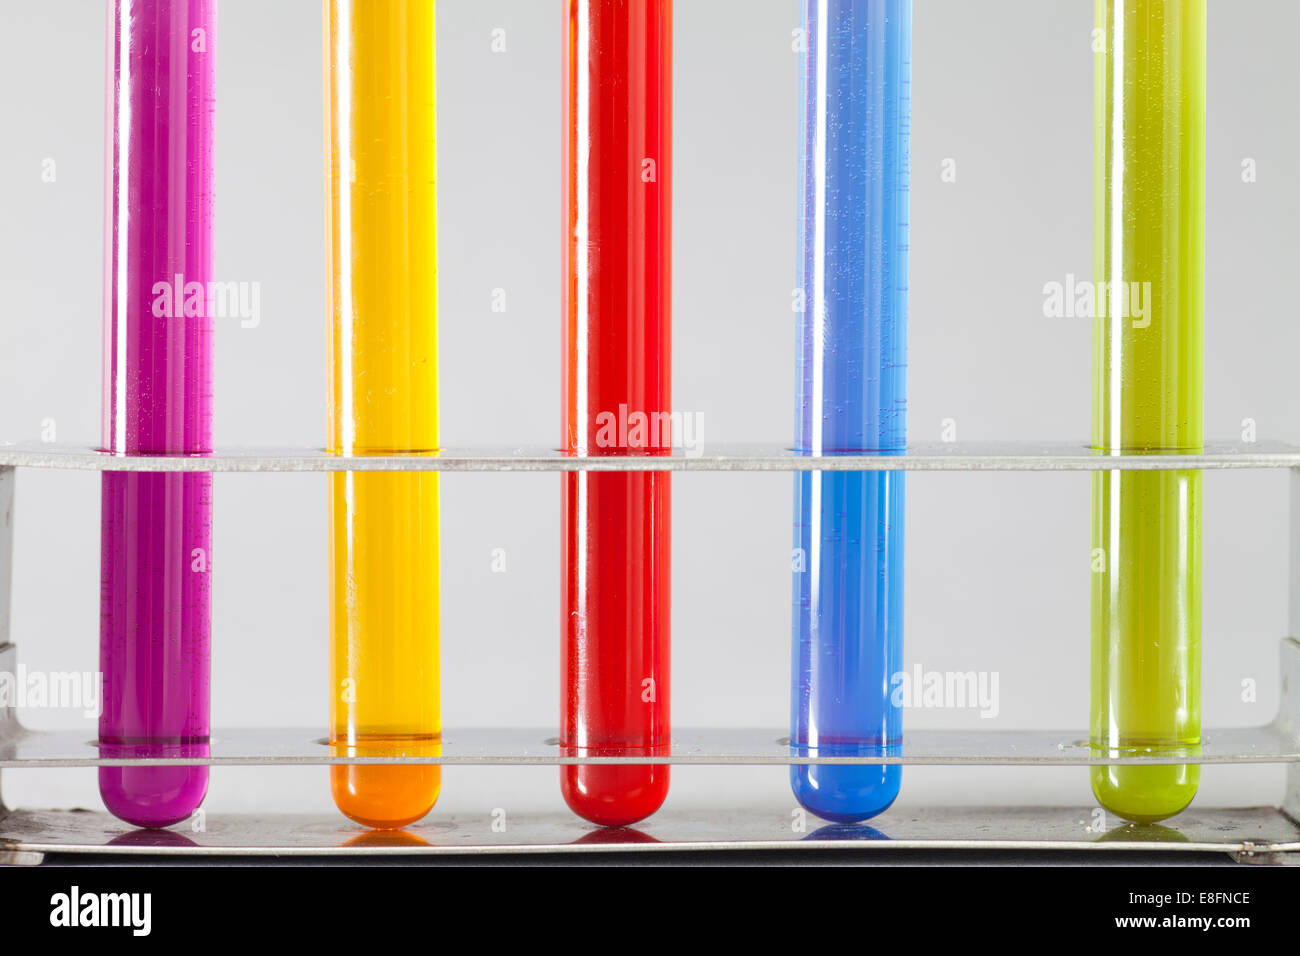 Multi-colored Test tubes in rack - Stock Image